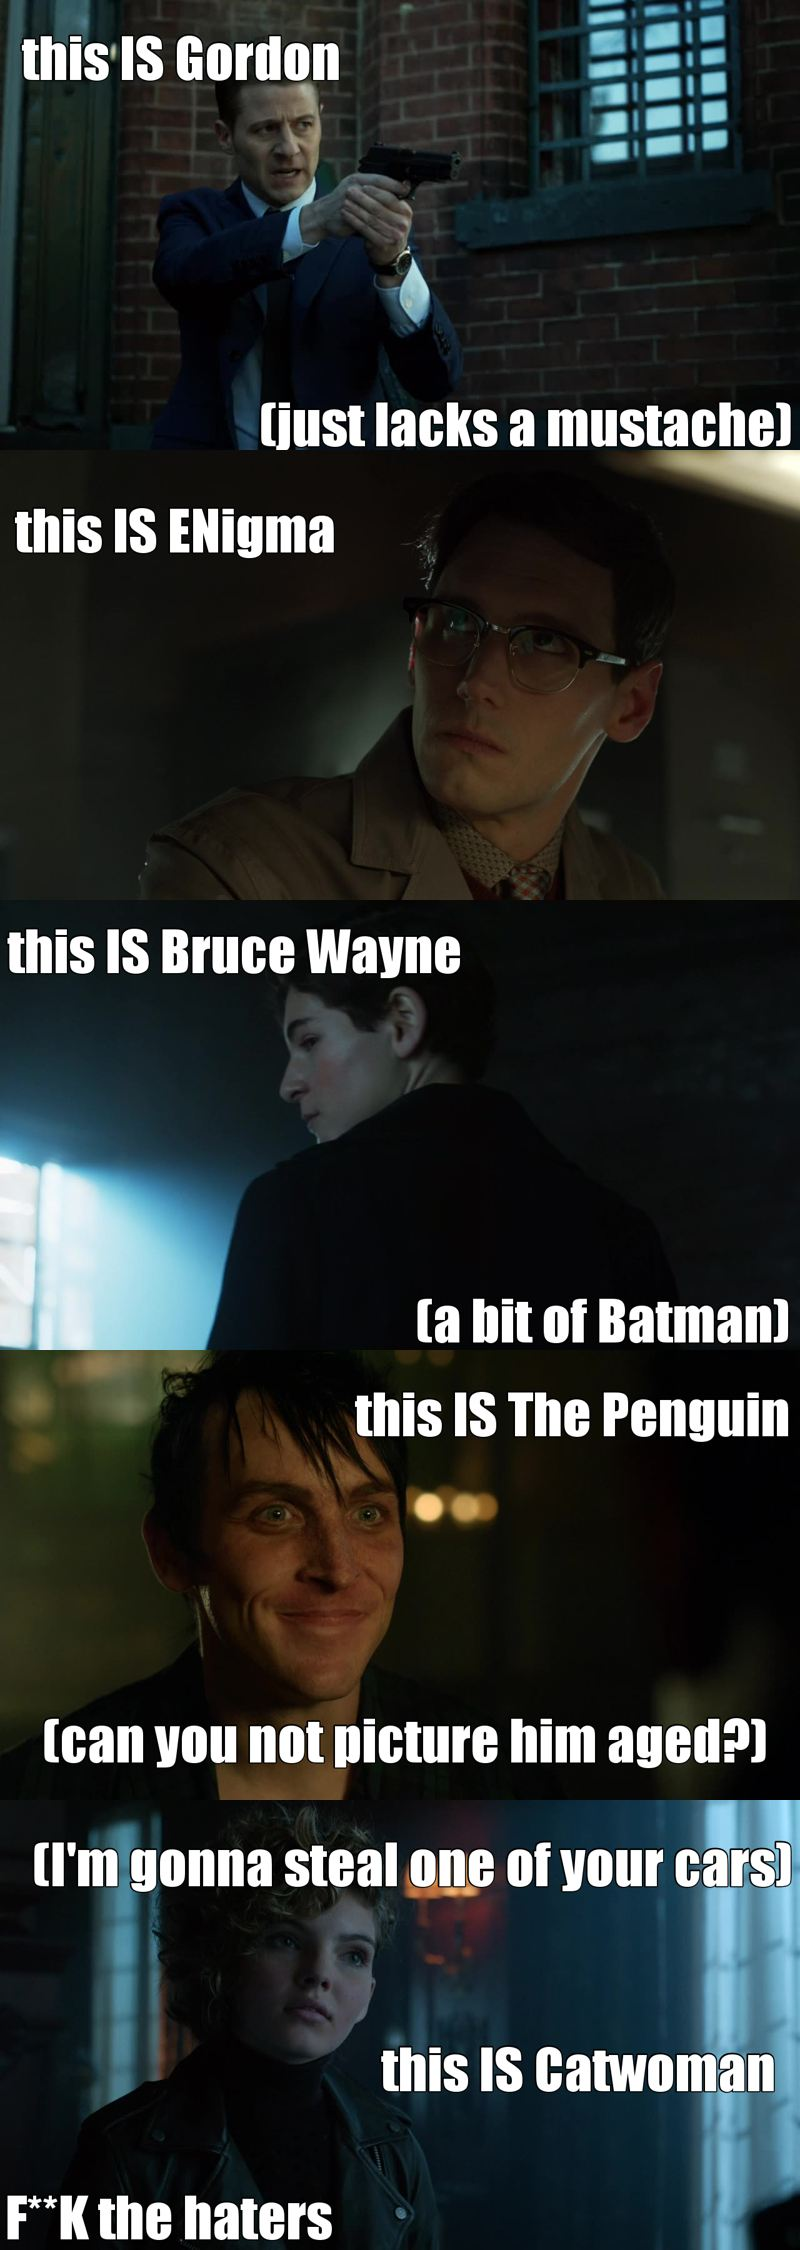 """as fan of Dc\Batman Comics, I can't say anything less than """"I'm proud of this episode"""", this is really a nice representation of Gotham and and the 'past' of characters that we already know. It was really like watching an AWESOME prelude."""